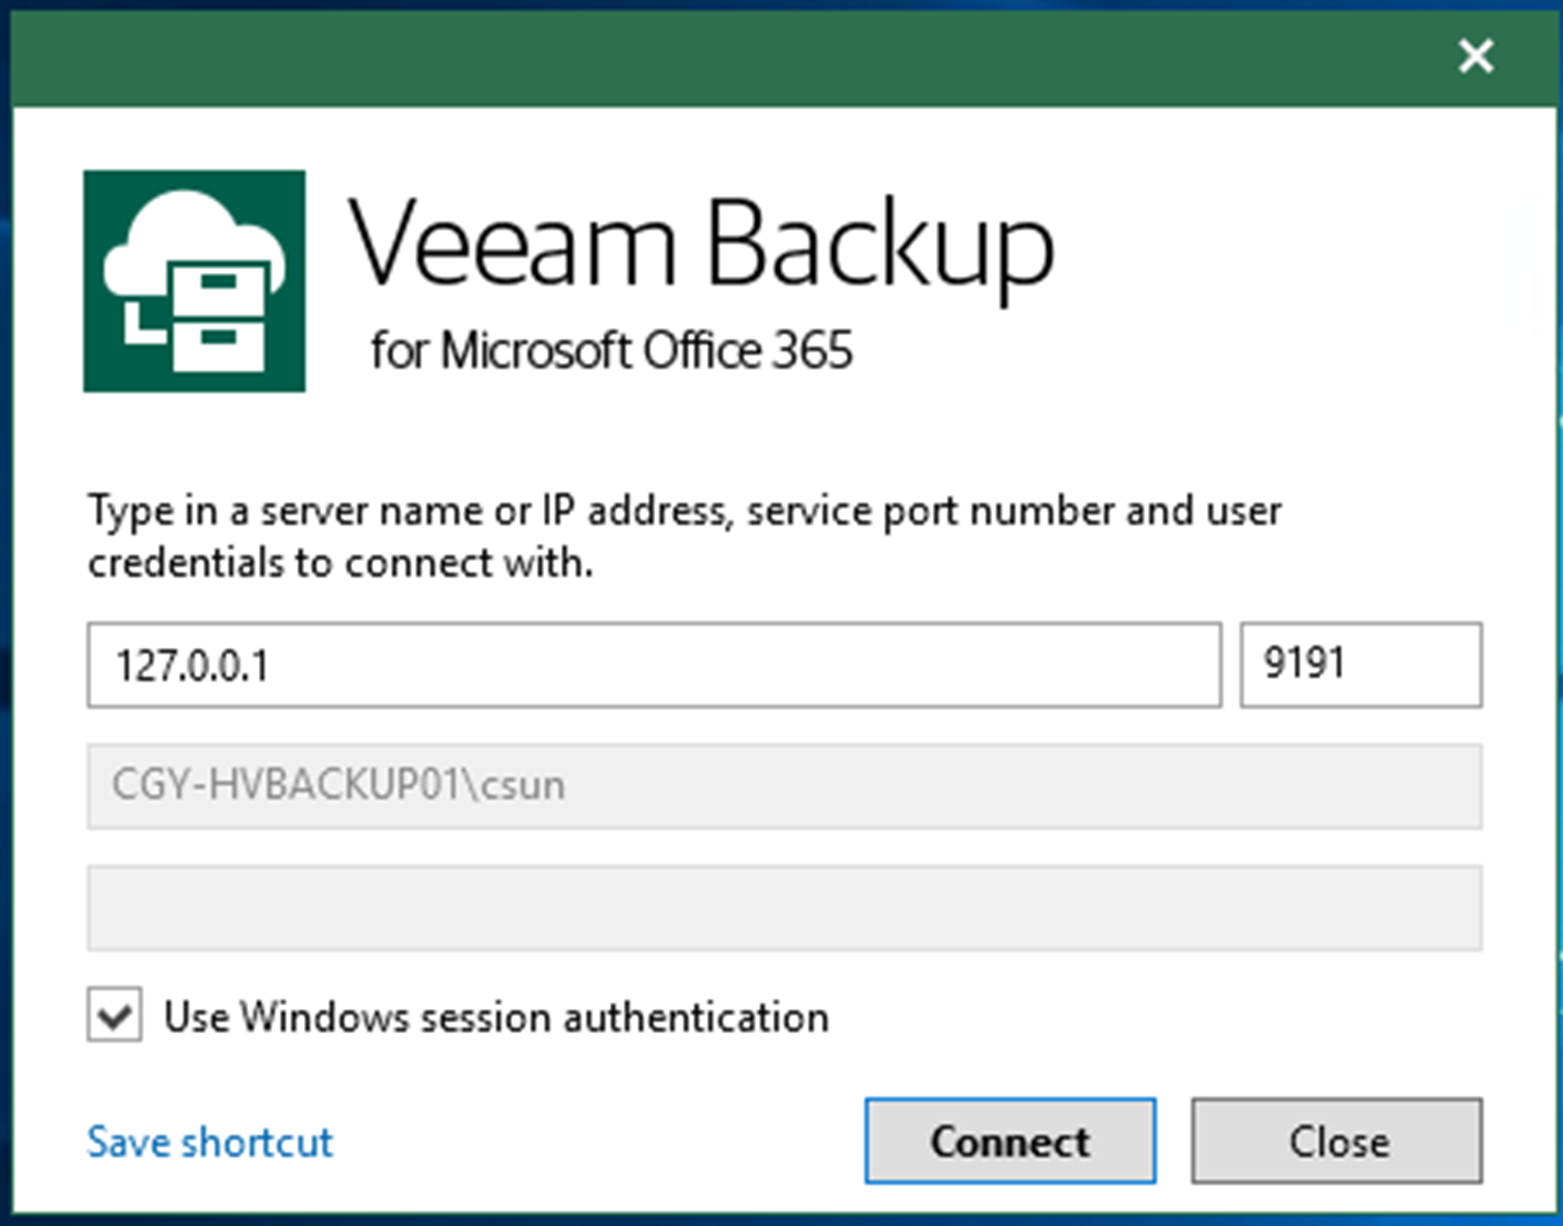 100320 2346 HowtoUpgrad17 - How to Upgrade Veeam Backup for Microsoft Office 365 to V4c Day 0 Update #Veeam #Office365 #Backup #Mvphour